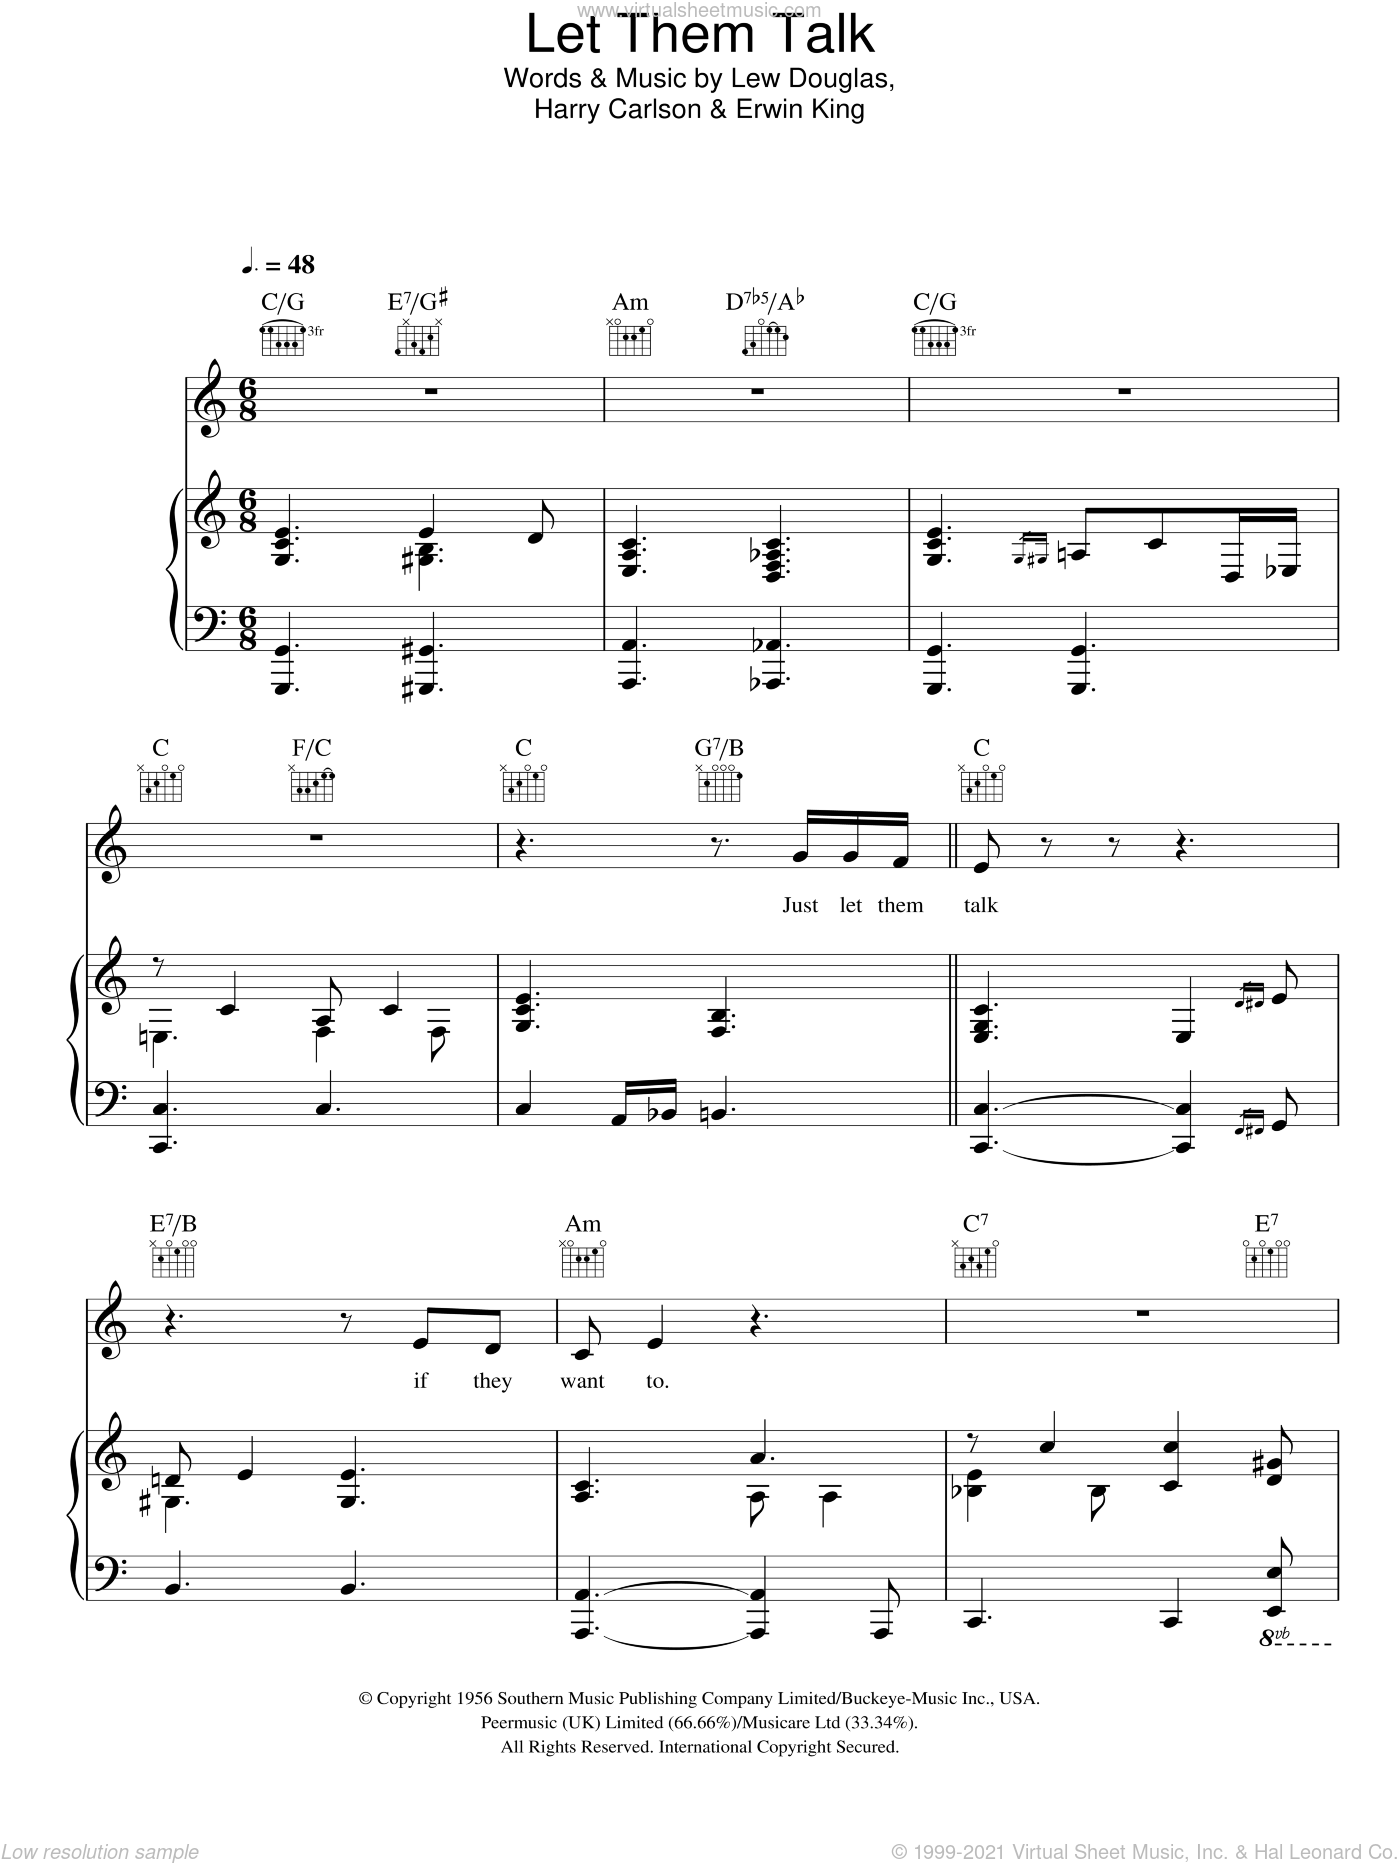 Let Them Talk sheet music for voice, piano or guitar by Lew Douglas. Score Image Preview.